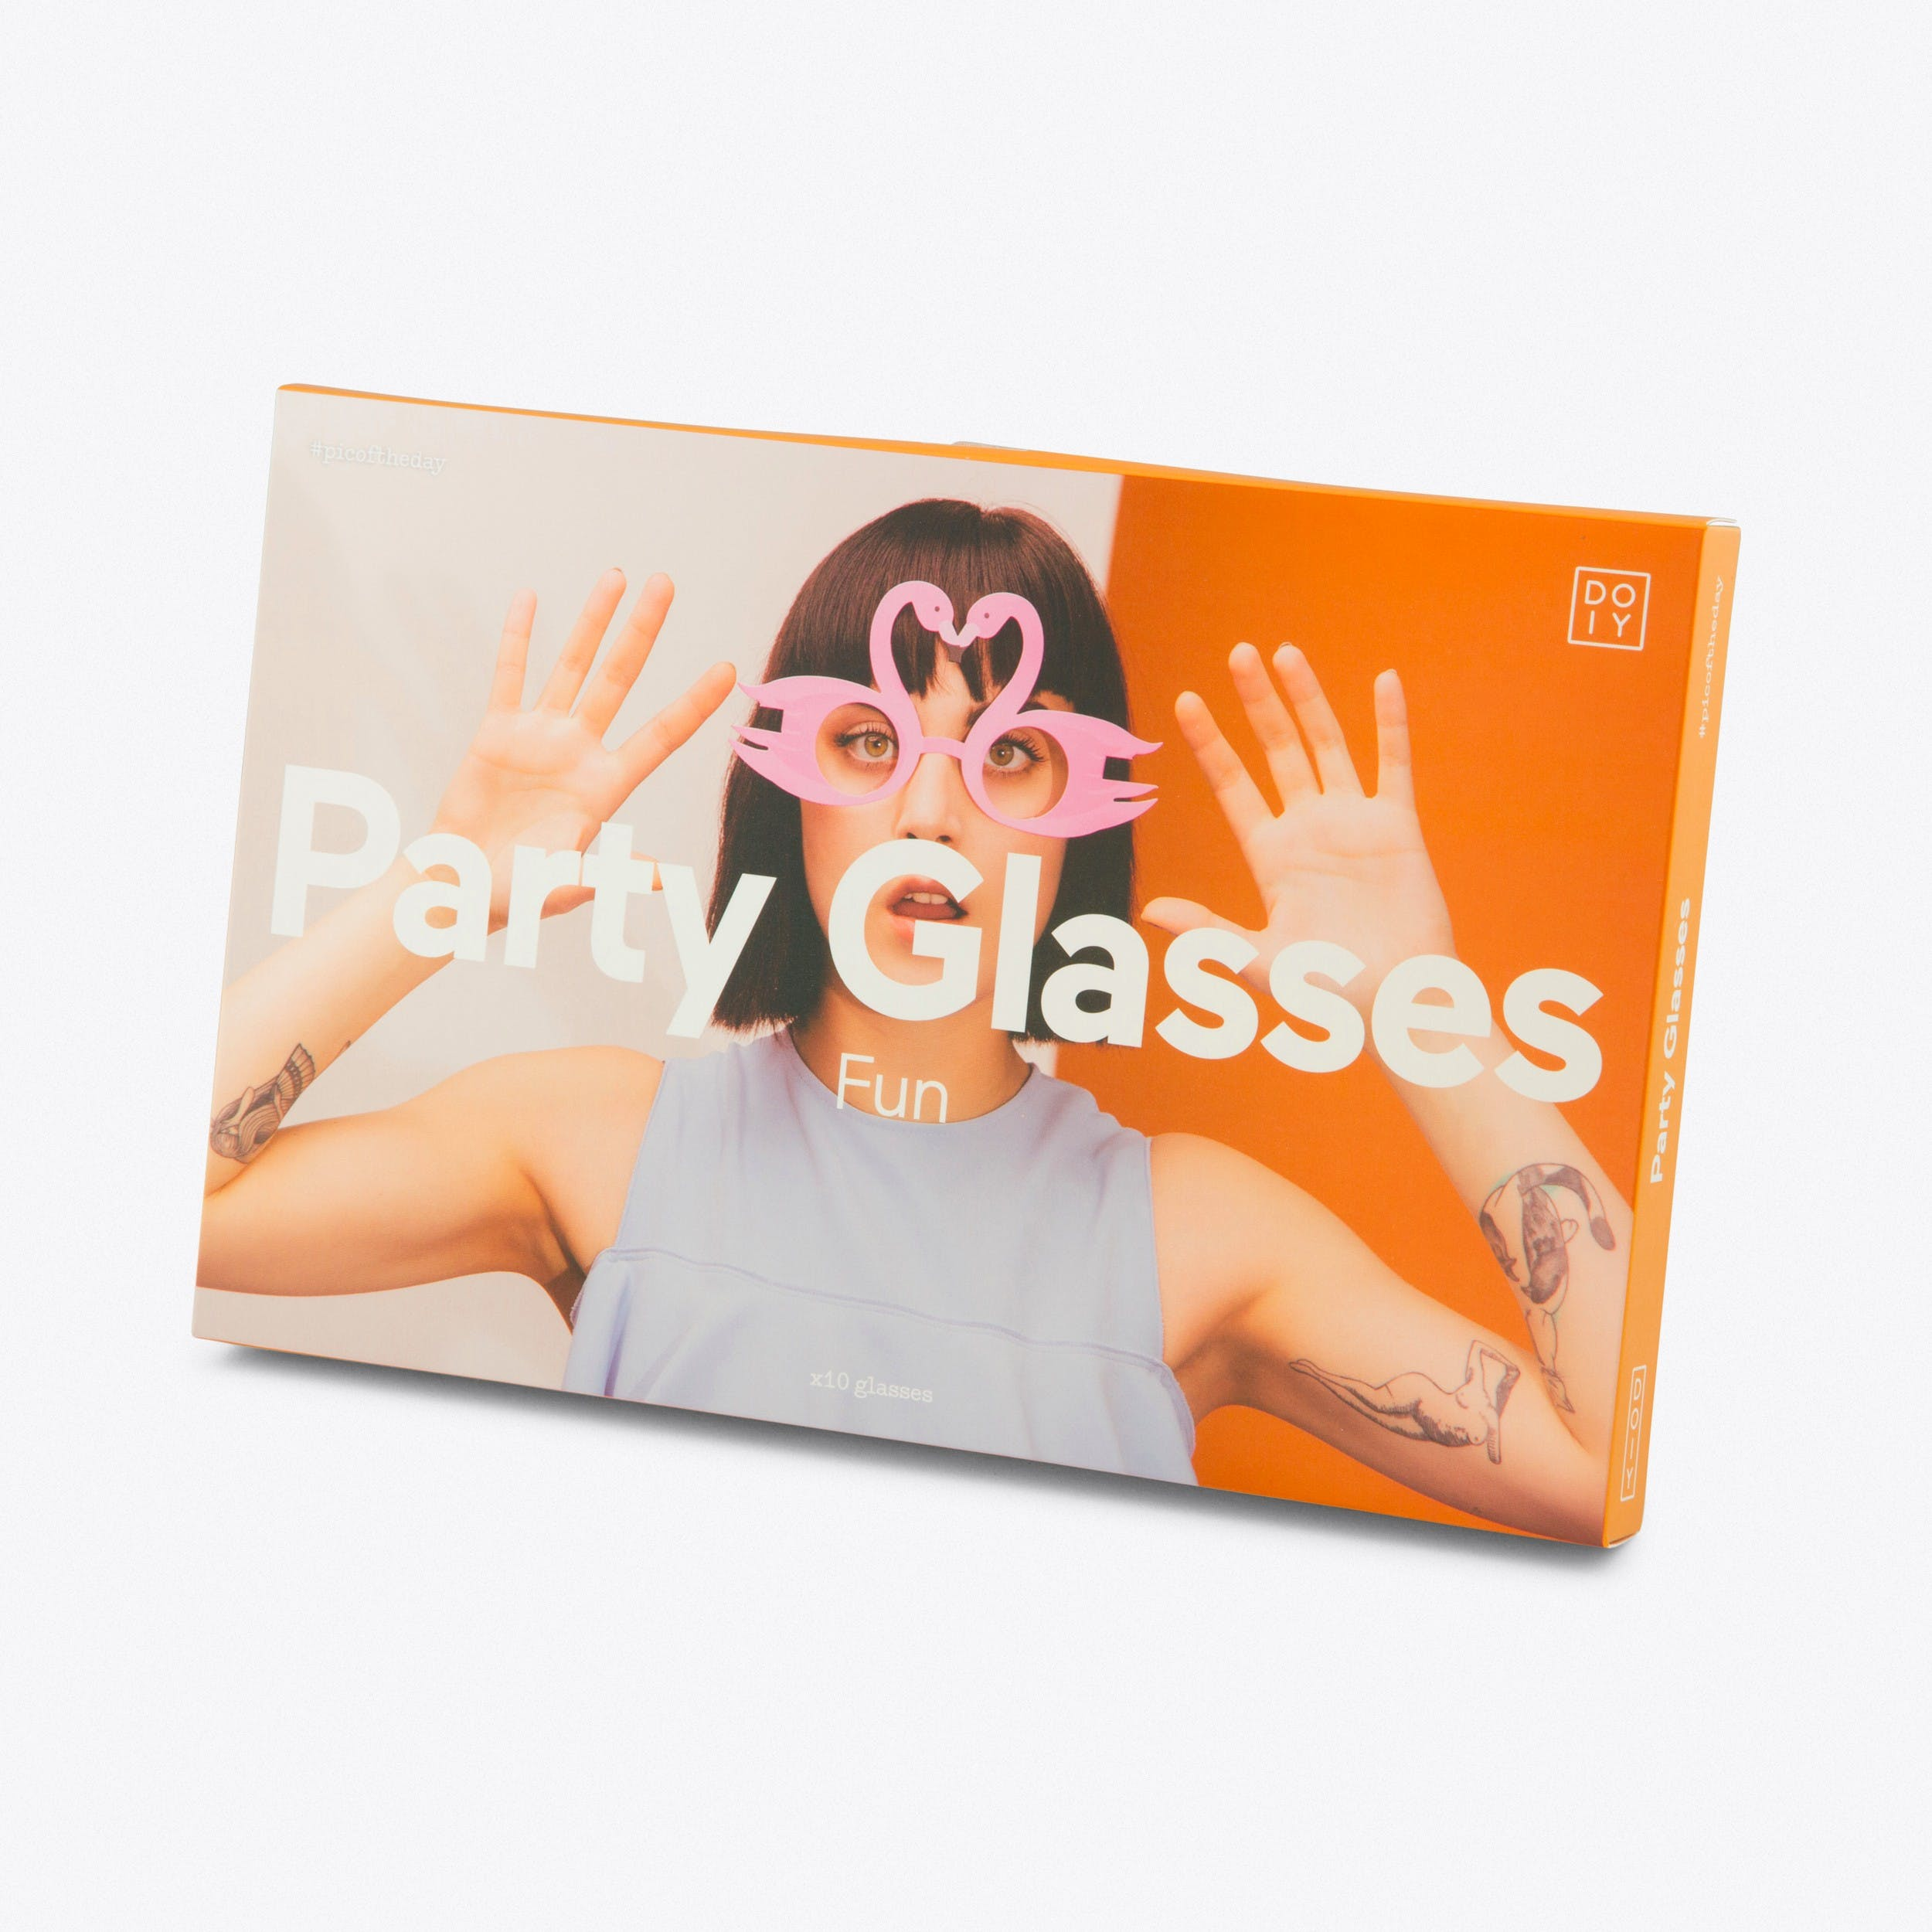 Party Glasses Fun Pack